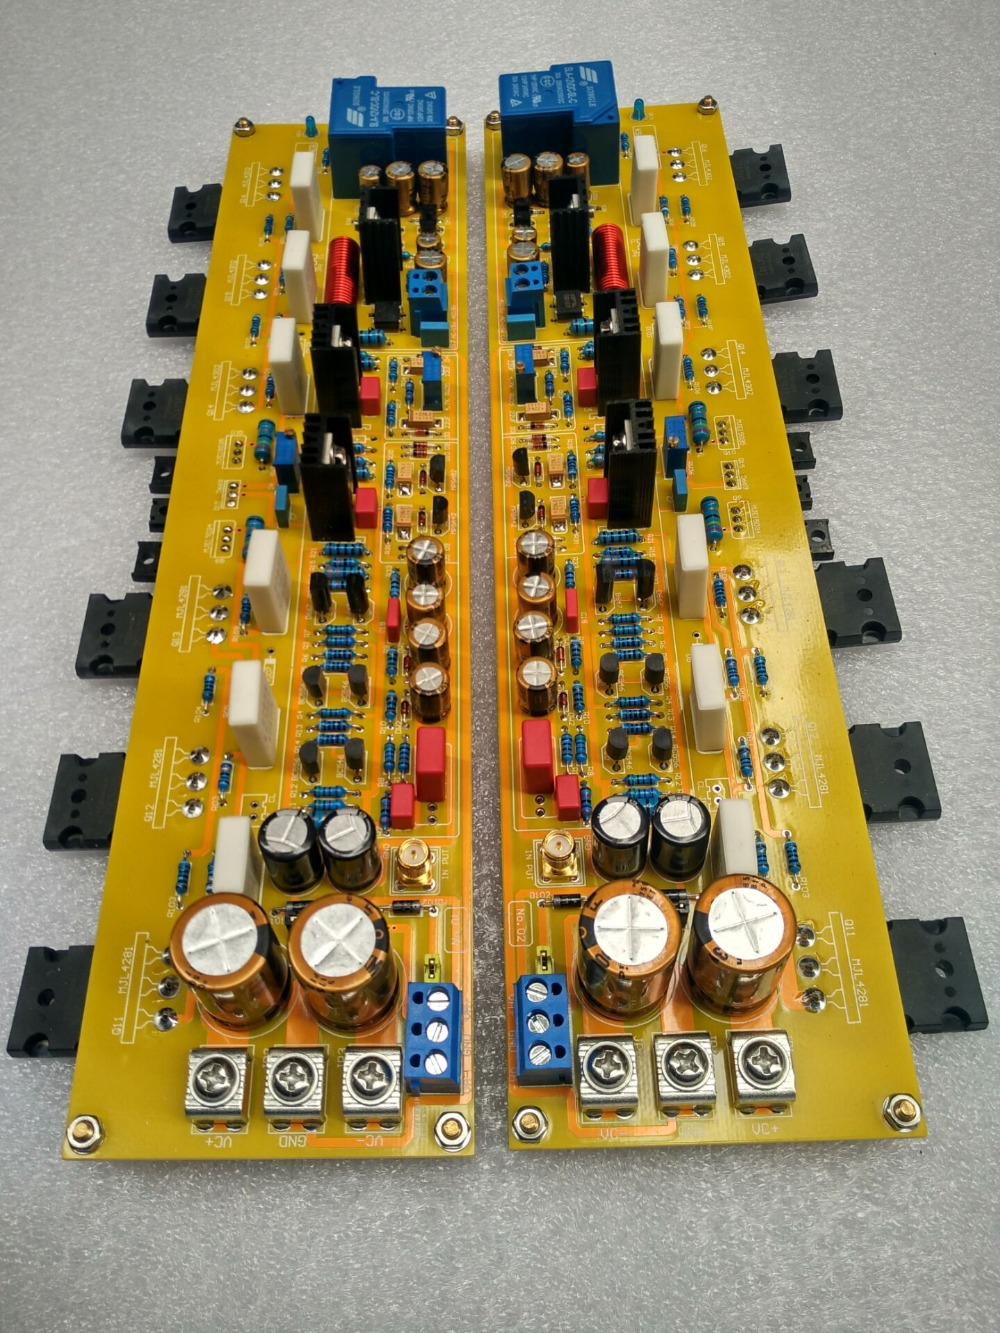 hight resolution of krell ksa50 amplifier circuit 50w 2sc5200 2sa1943 2sc2073 2sa940 2sc5171 2sa1930 tube class a pure after class amplifier board in amplifier from consumer